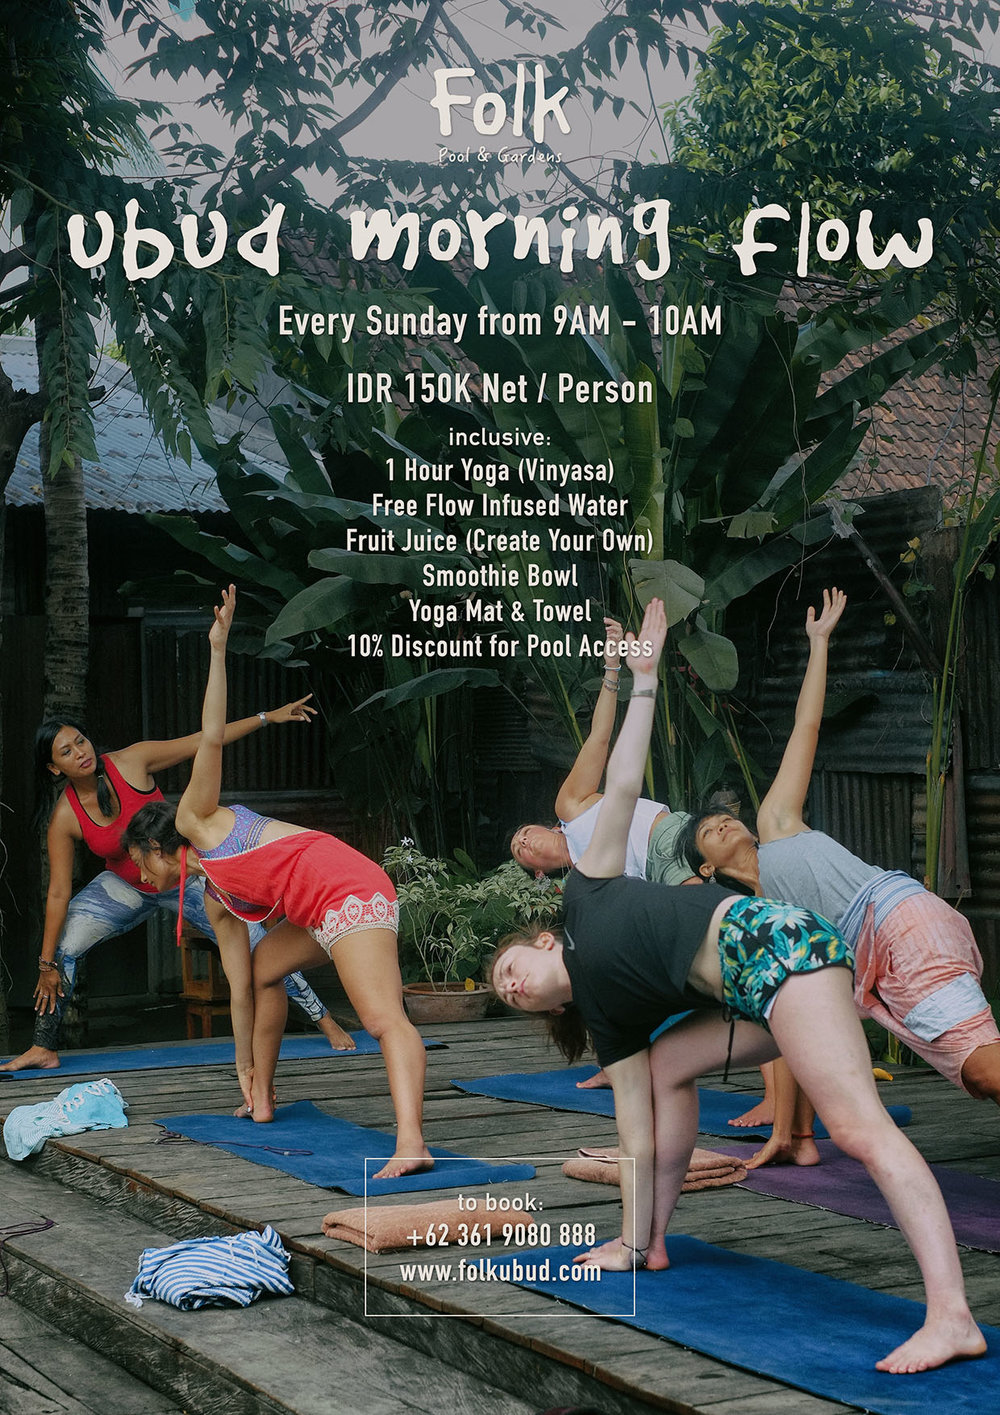 Ubud Flow on Sundays - Get your early Ubud vibe flowing with an hour session led by our Master Yoga facing our cute blue and green oasis.Every Sunday from 9am to 10amIDR 150K net per person with inclusions of 1 hr Vinyasa session, free flow infused water, create your own juice blend, a smoothie bowl, Yoga mat & towel, and a 10% off to swim. Join the session using the button below.